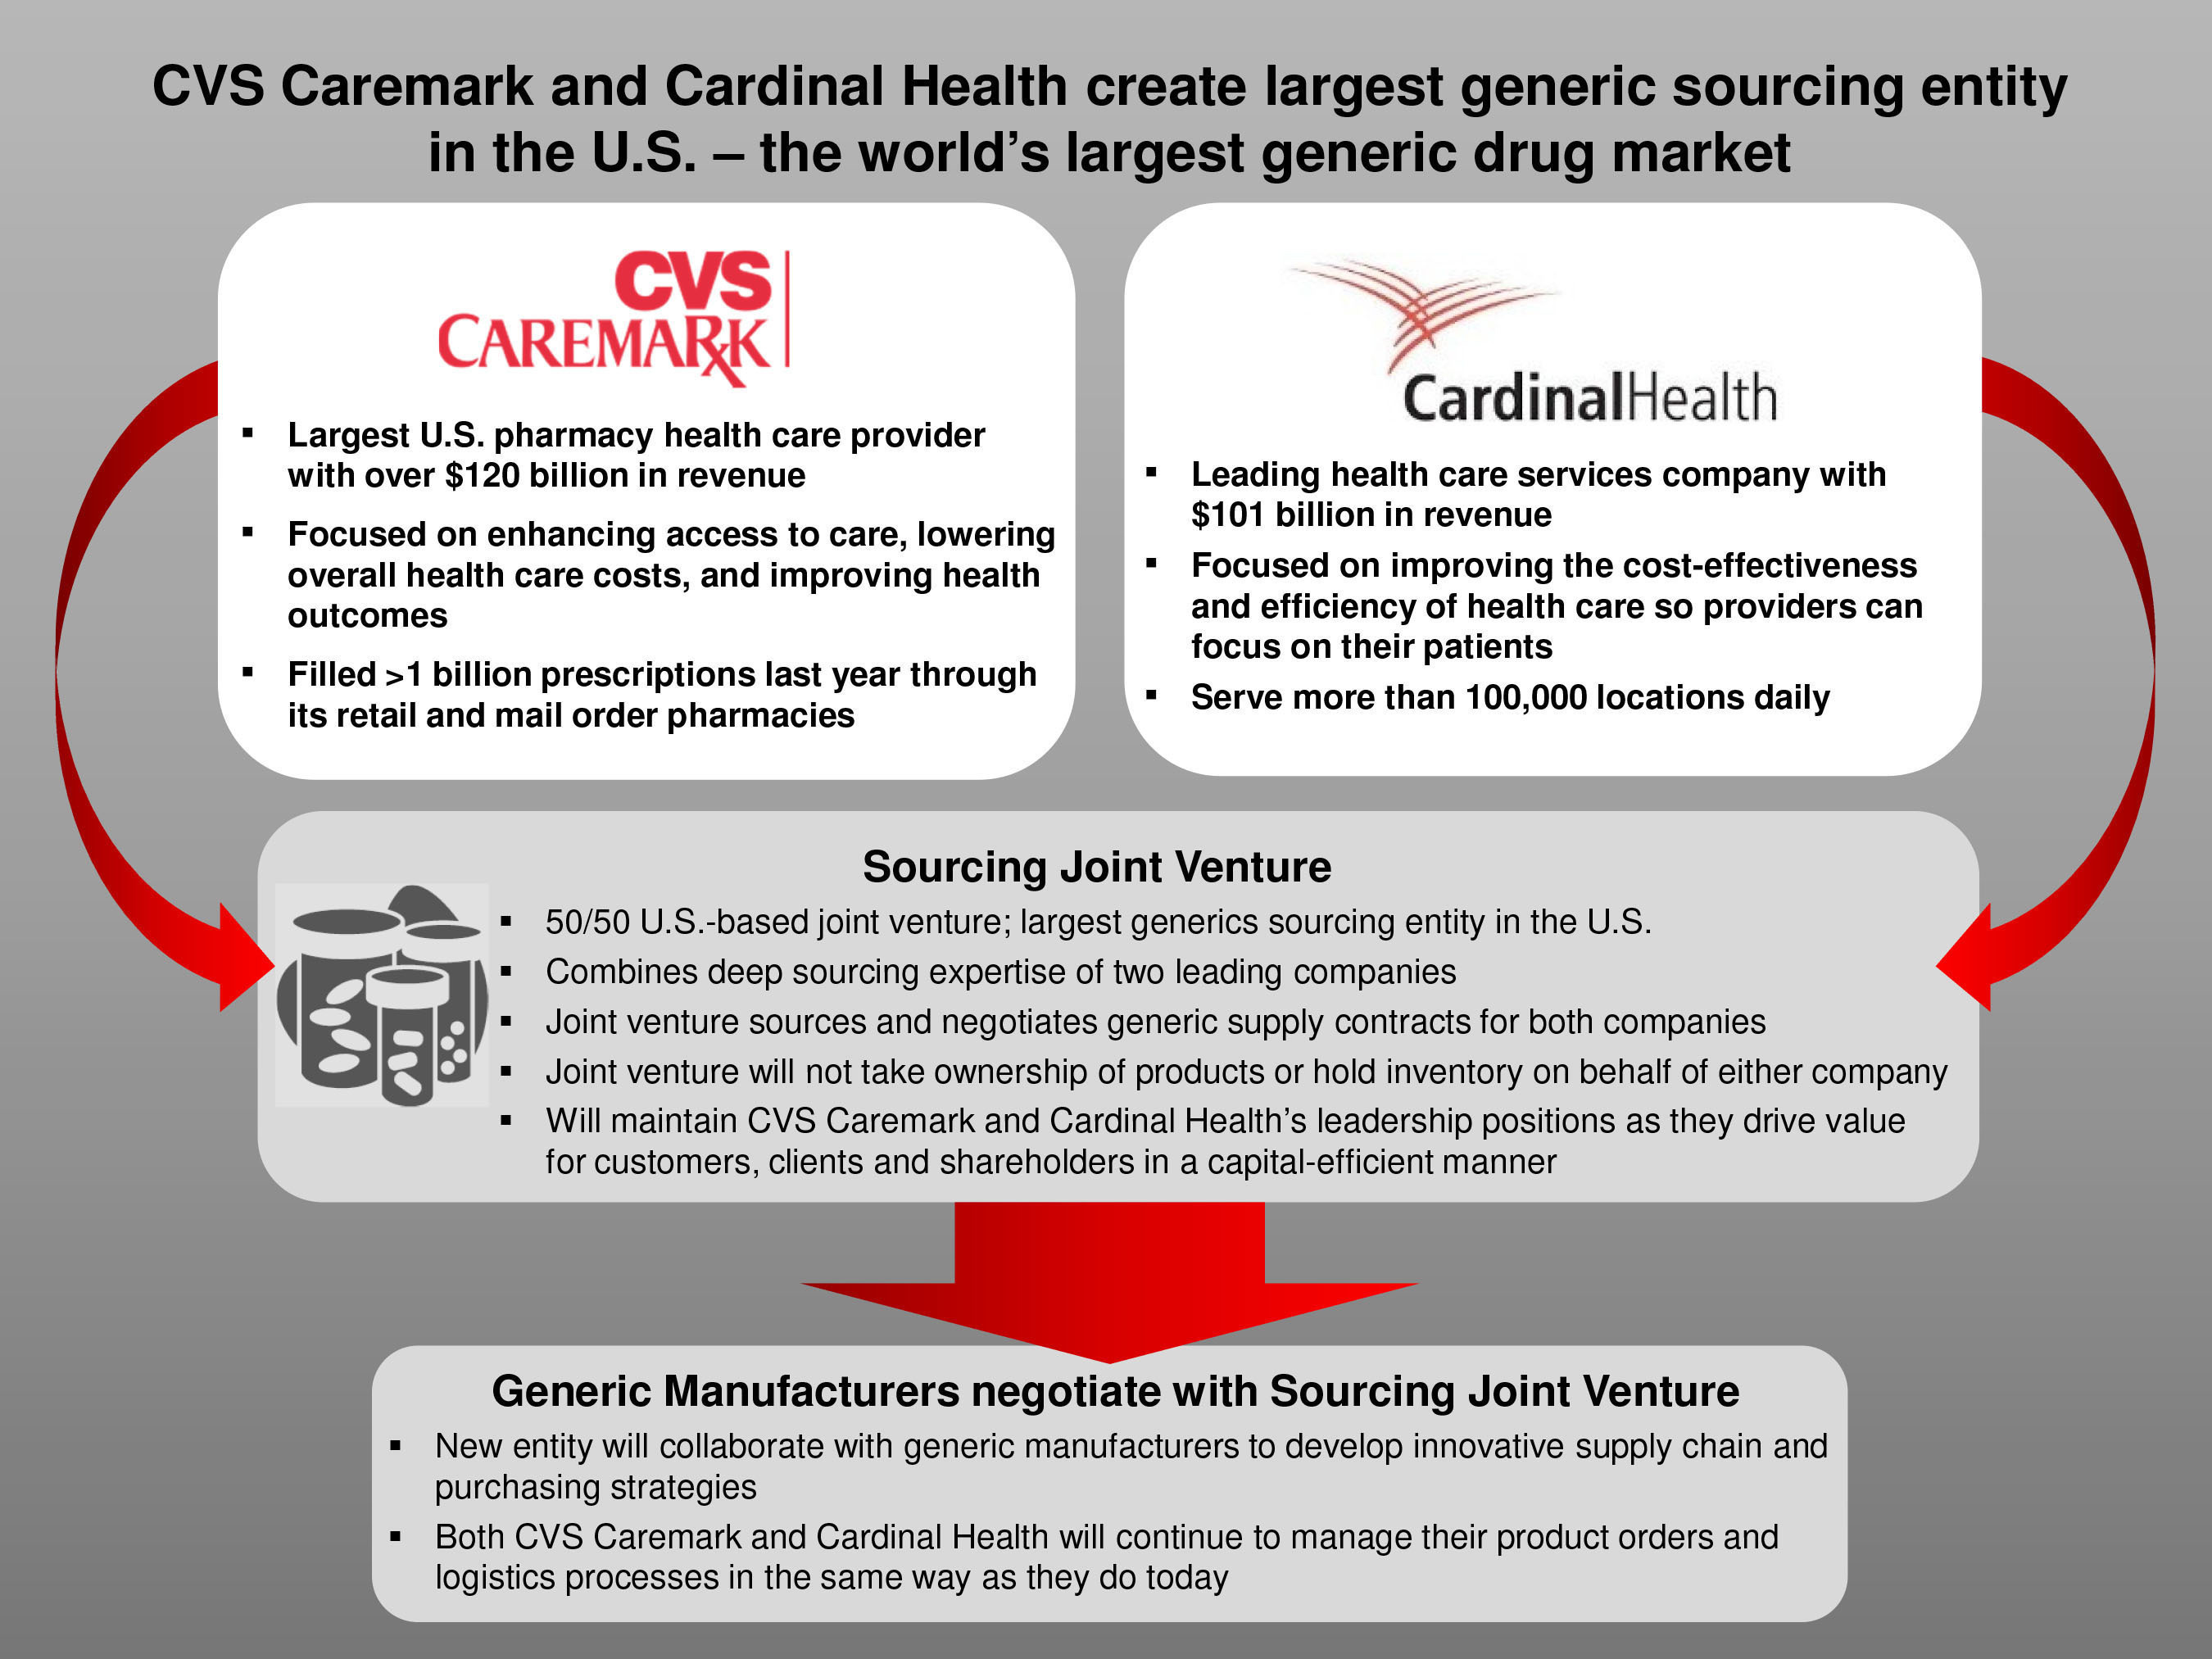 CVS Caremark And Cardinal Health Announce Creation Of Largest Generic Sourcing Entity In U.S.  (PRNewsFoto/Cardinal Health)